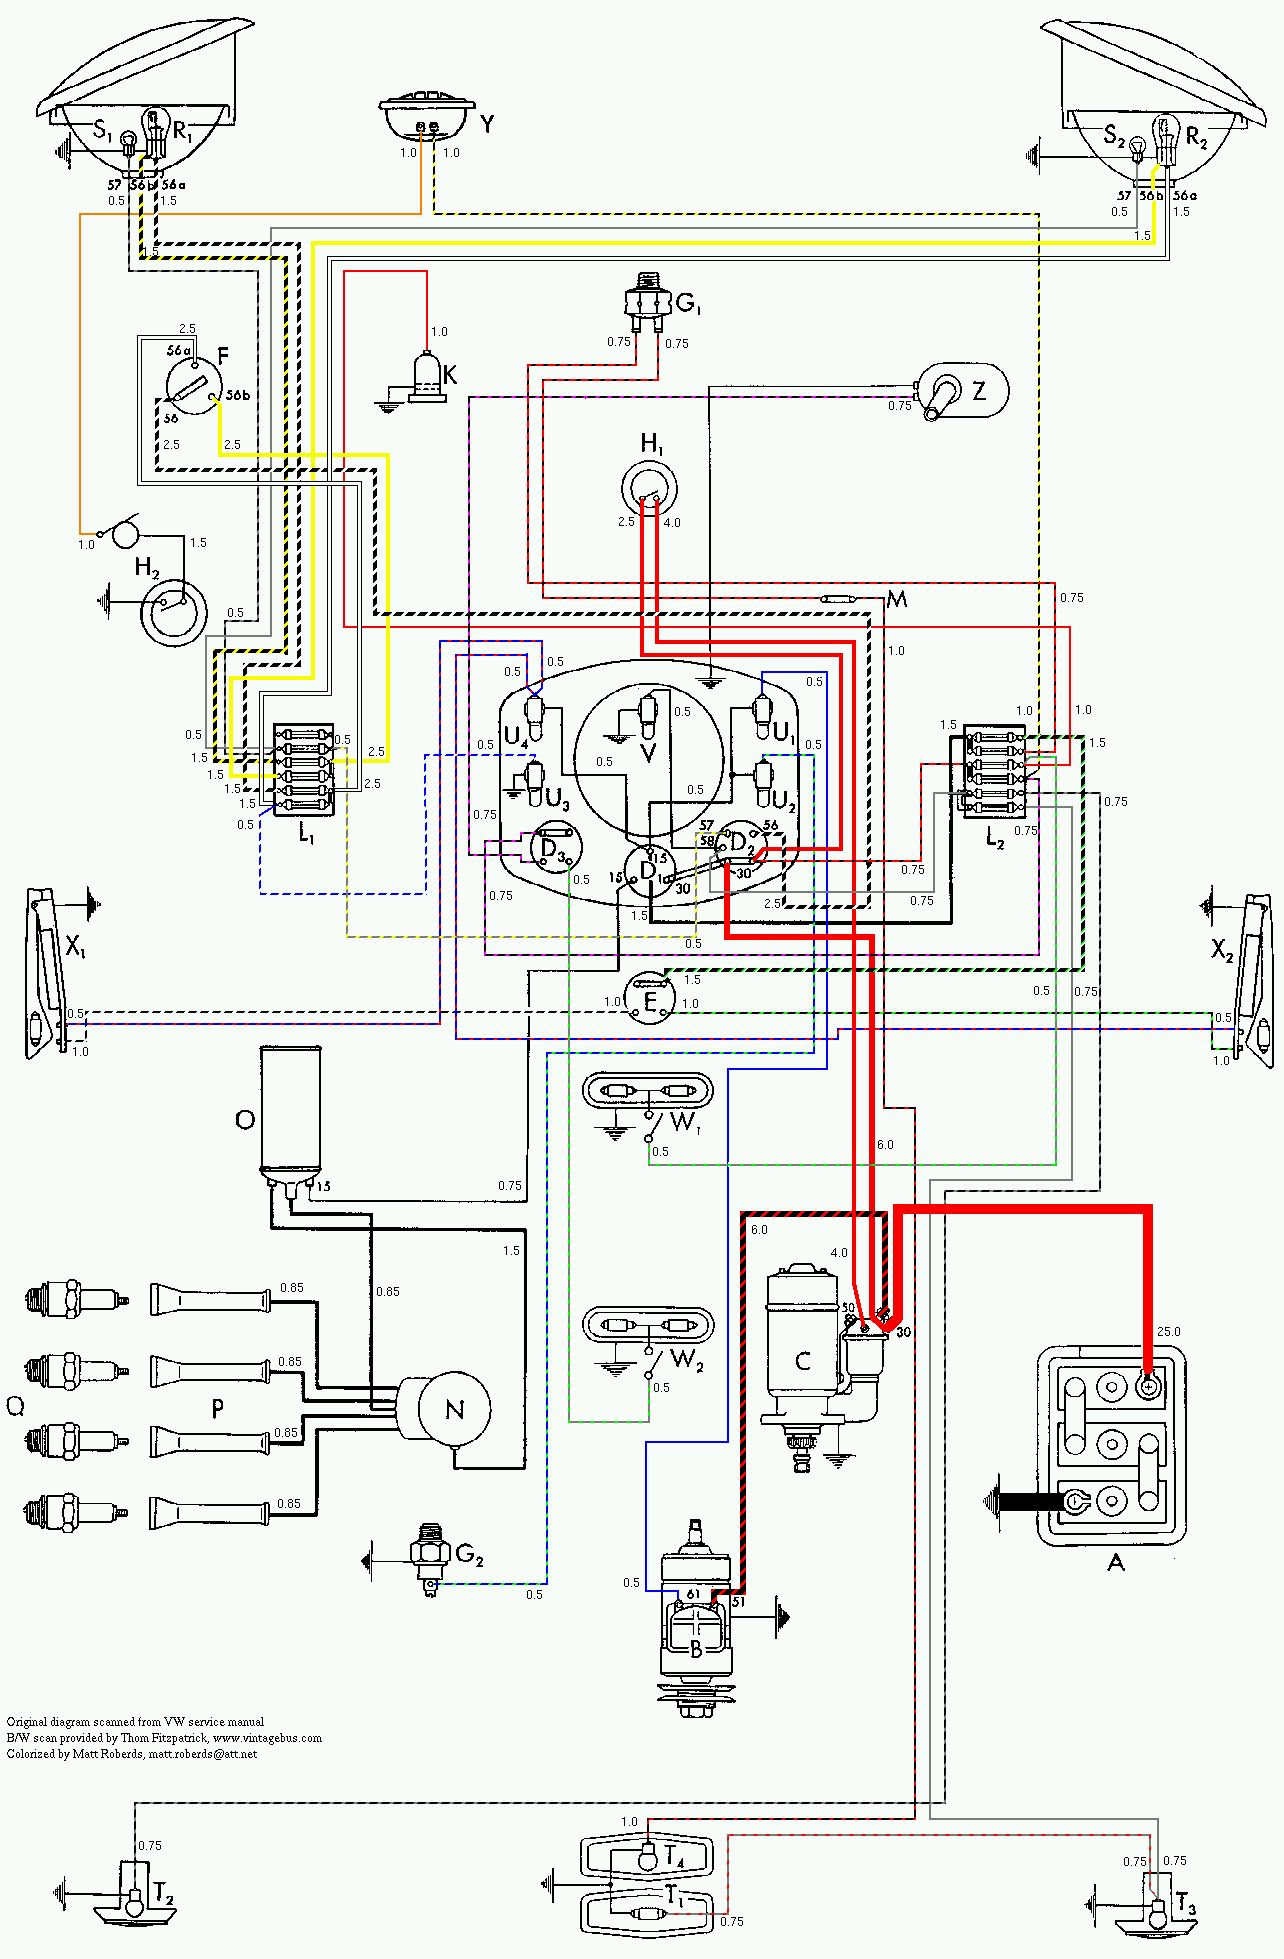 1973 Dodge Challenger Wiring Diagram For Electronic Distributor 2003 Cadillac Sts Engine Diagram Bobcate S70 Losdol2 Blong Jeanjaures37 Fr